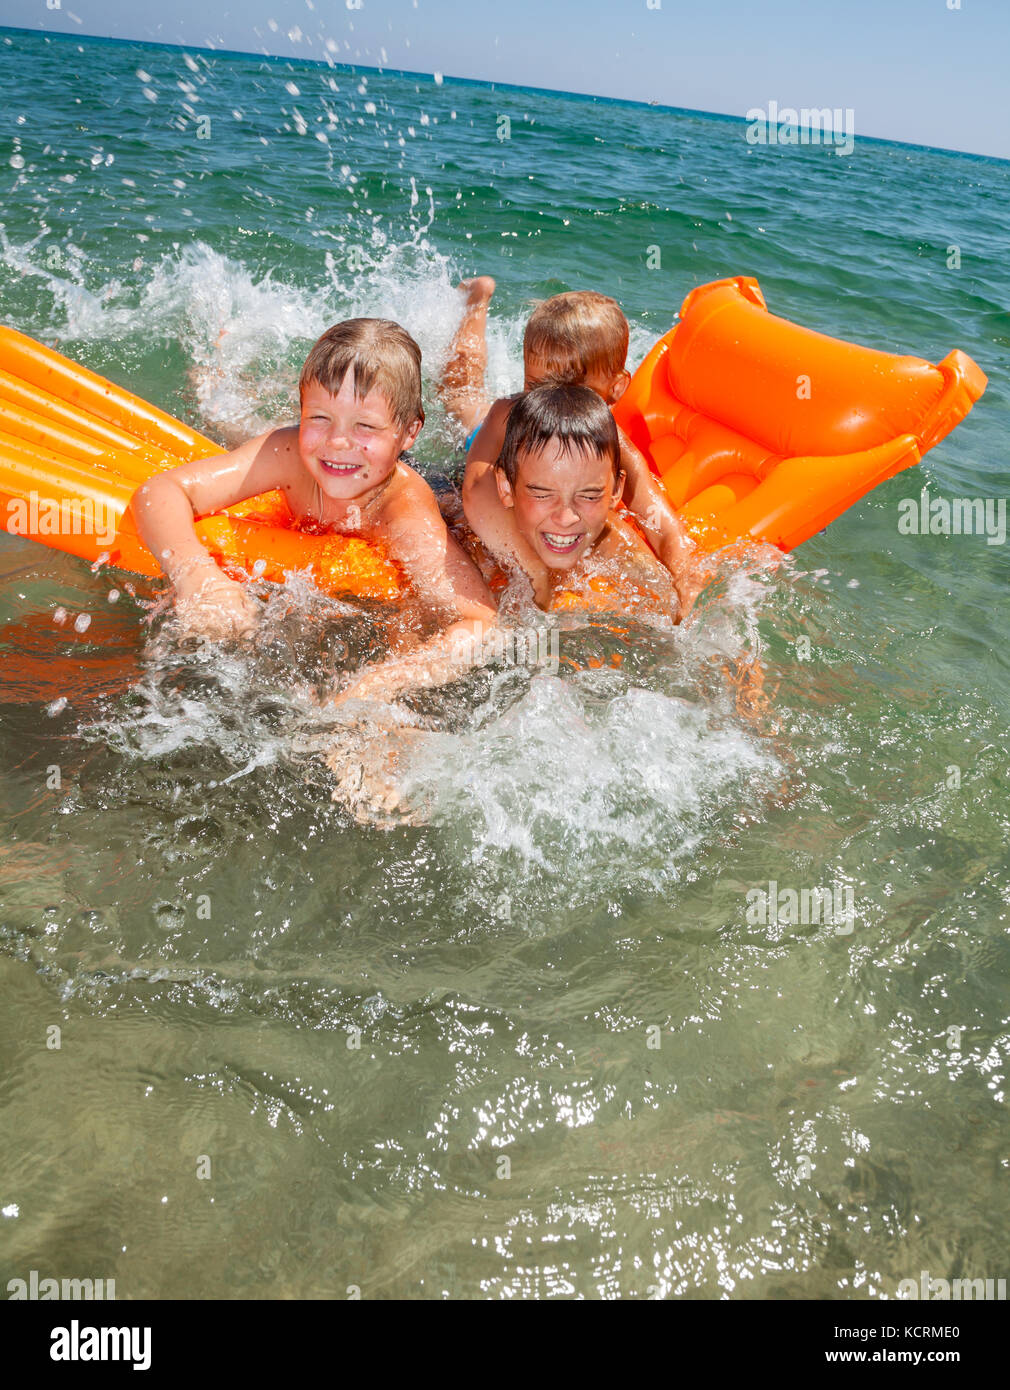 Three kids having fun floating on a inflatable mattress in the sea - Stock Image